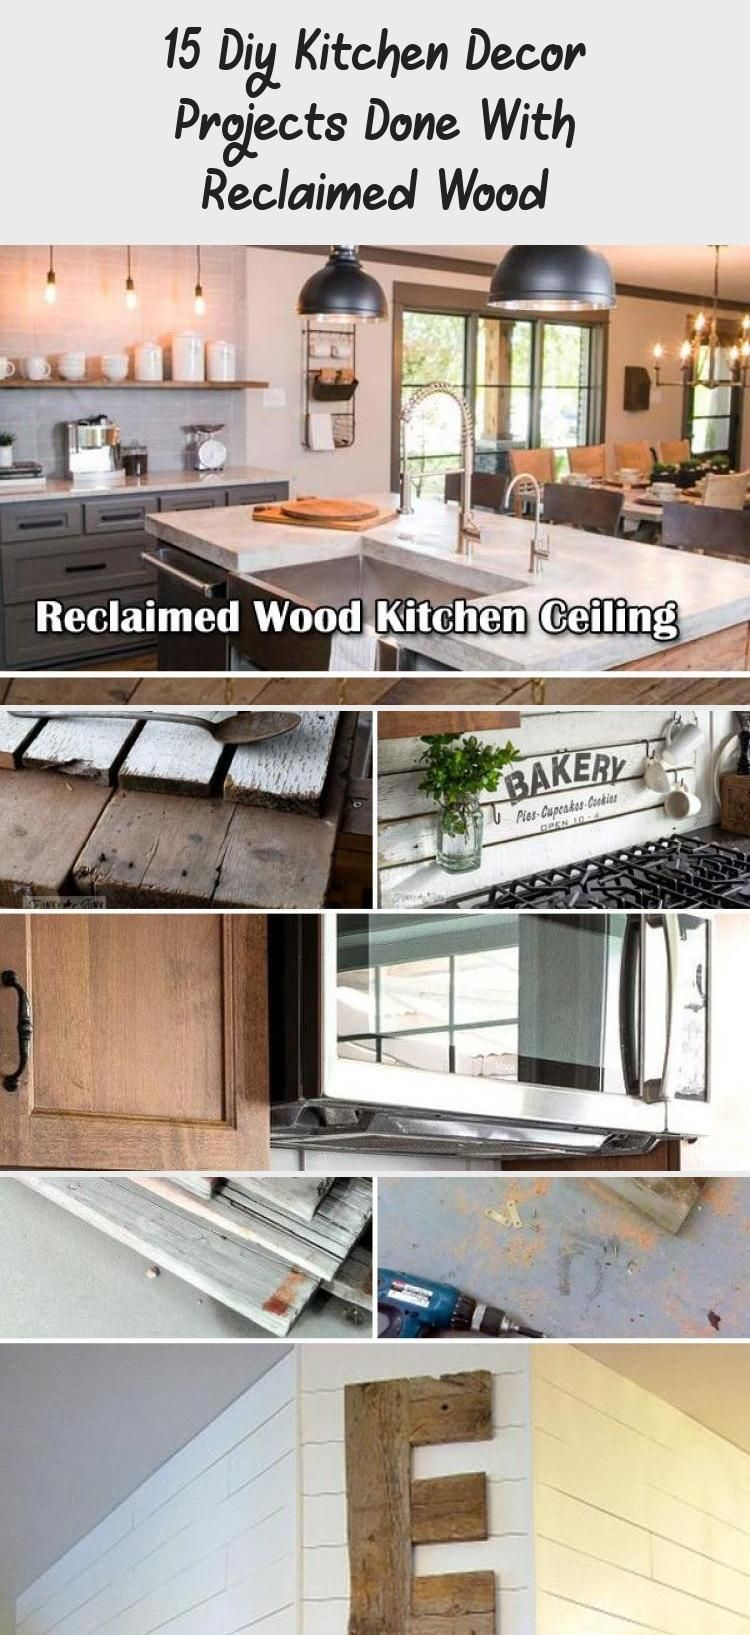 - 15 Diy Kitchen Decor Projects Done With Reclaimed Wood In 2020